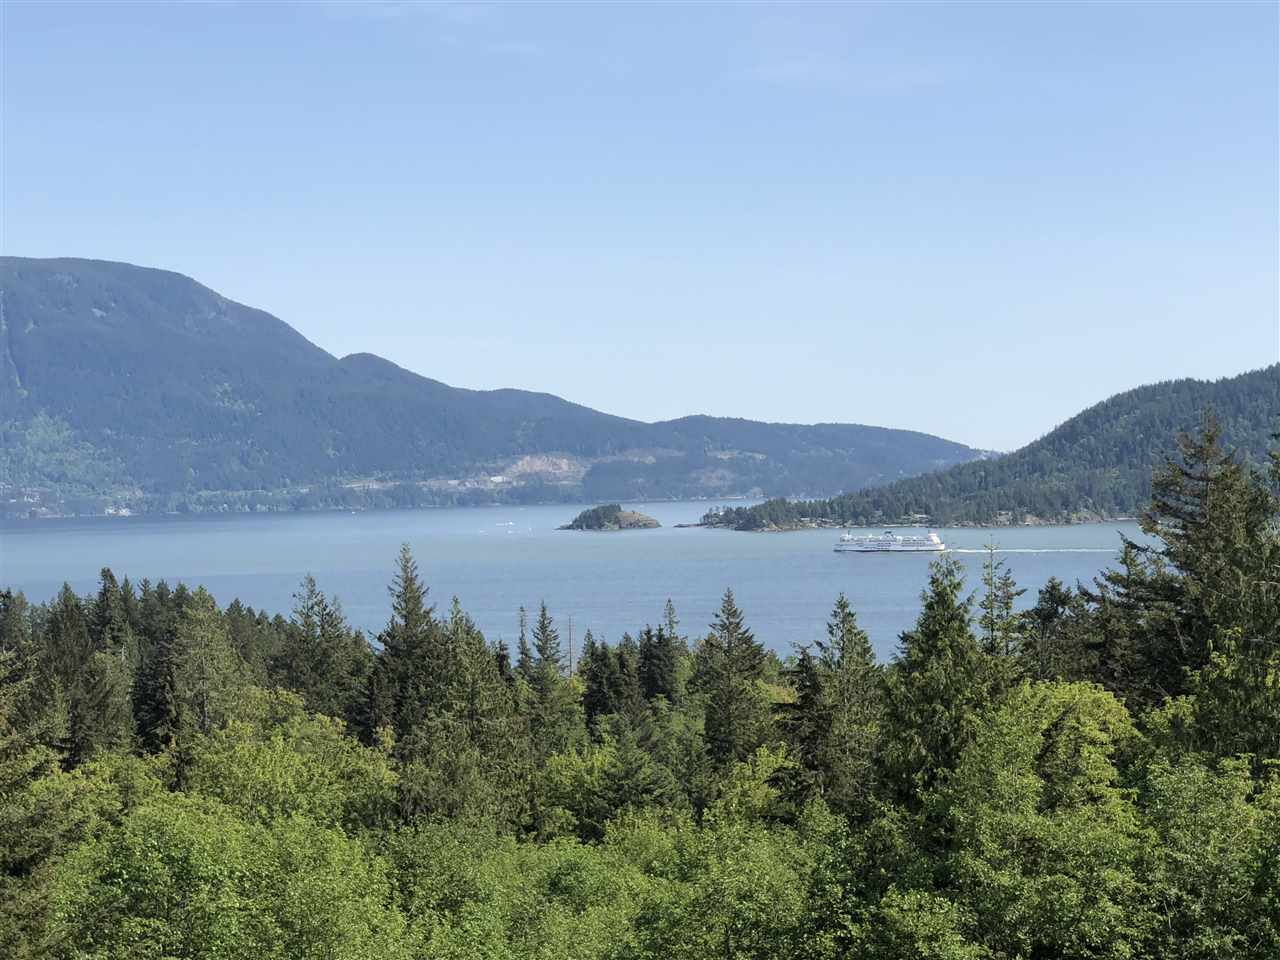 Main Photo: Lot 16 FIRCOM PLATEAU STREET: Gambier Island Home for sale (Sunshine Coast)  : MLS®# R2269746